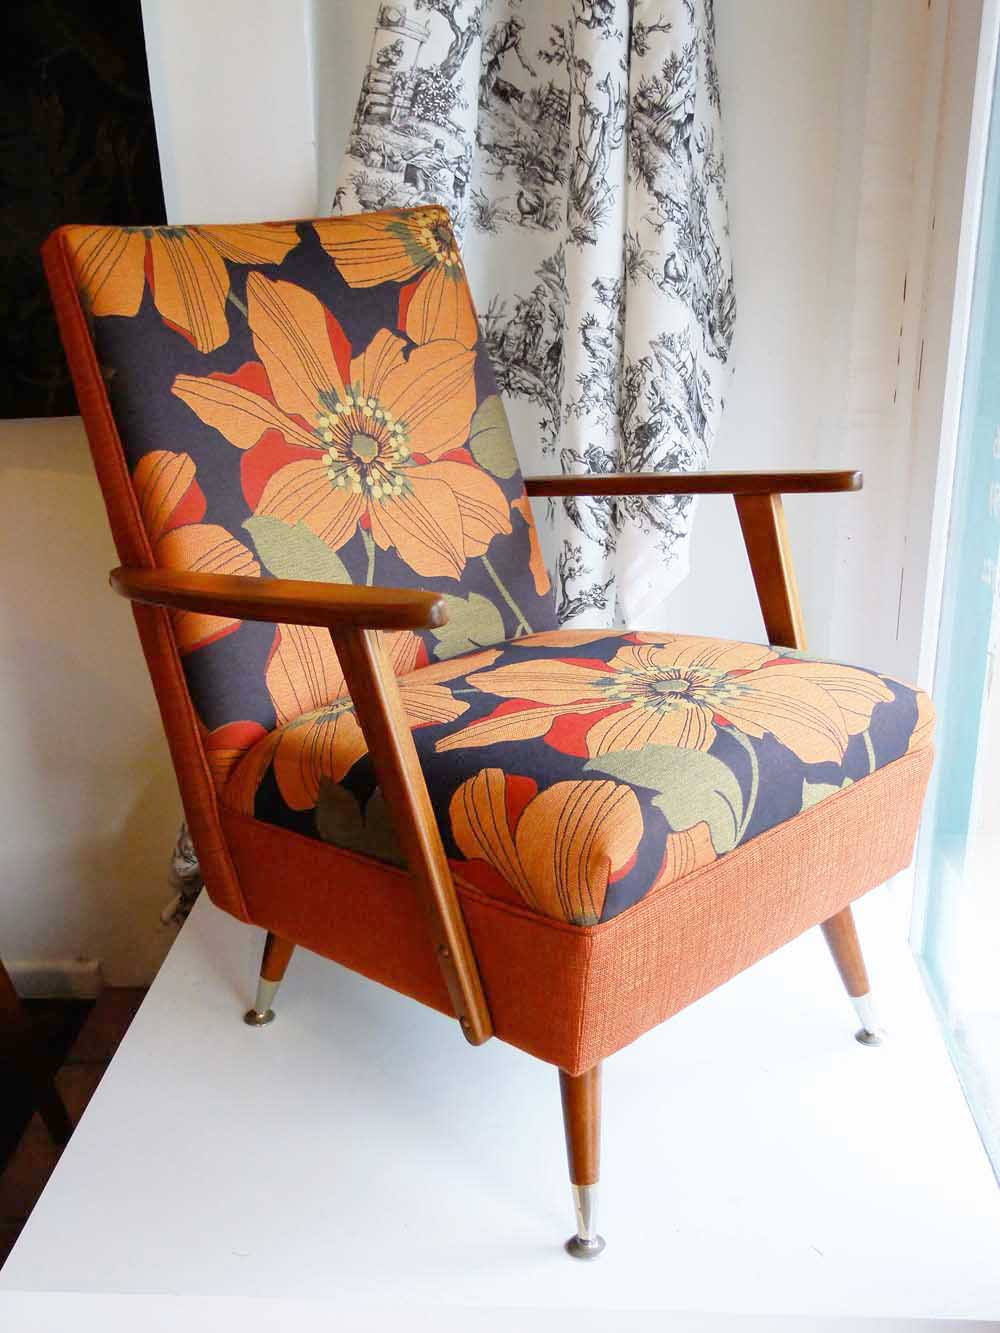 Retro Chairs Nz Revival Furniture Retro furniture revived in